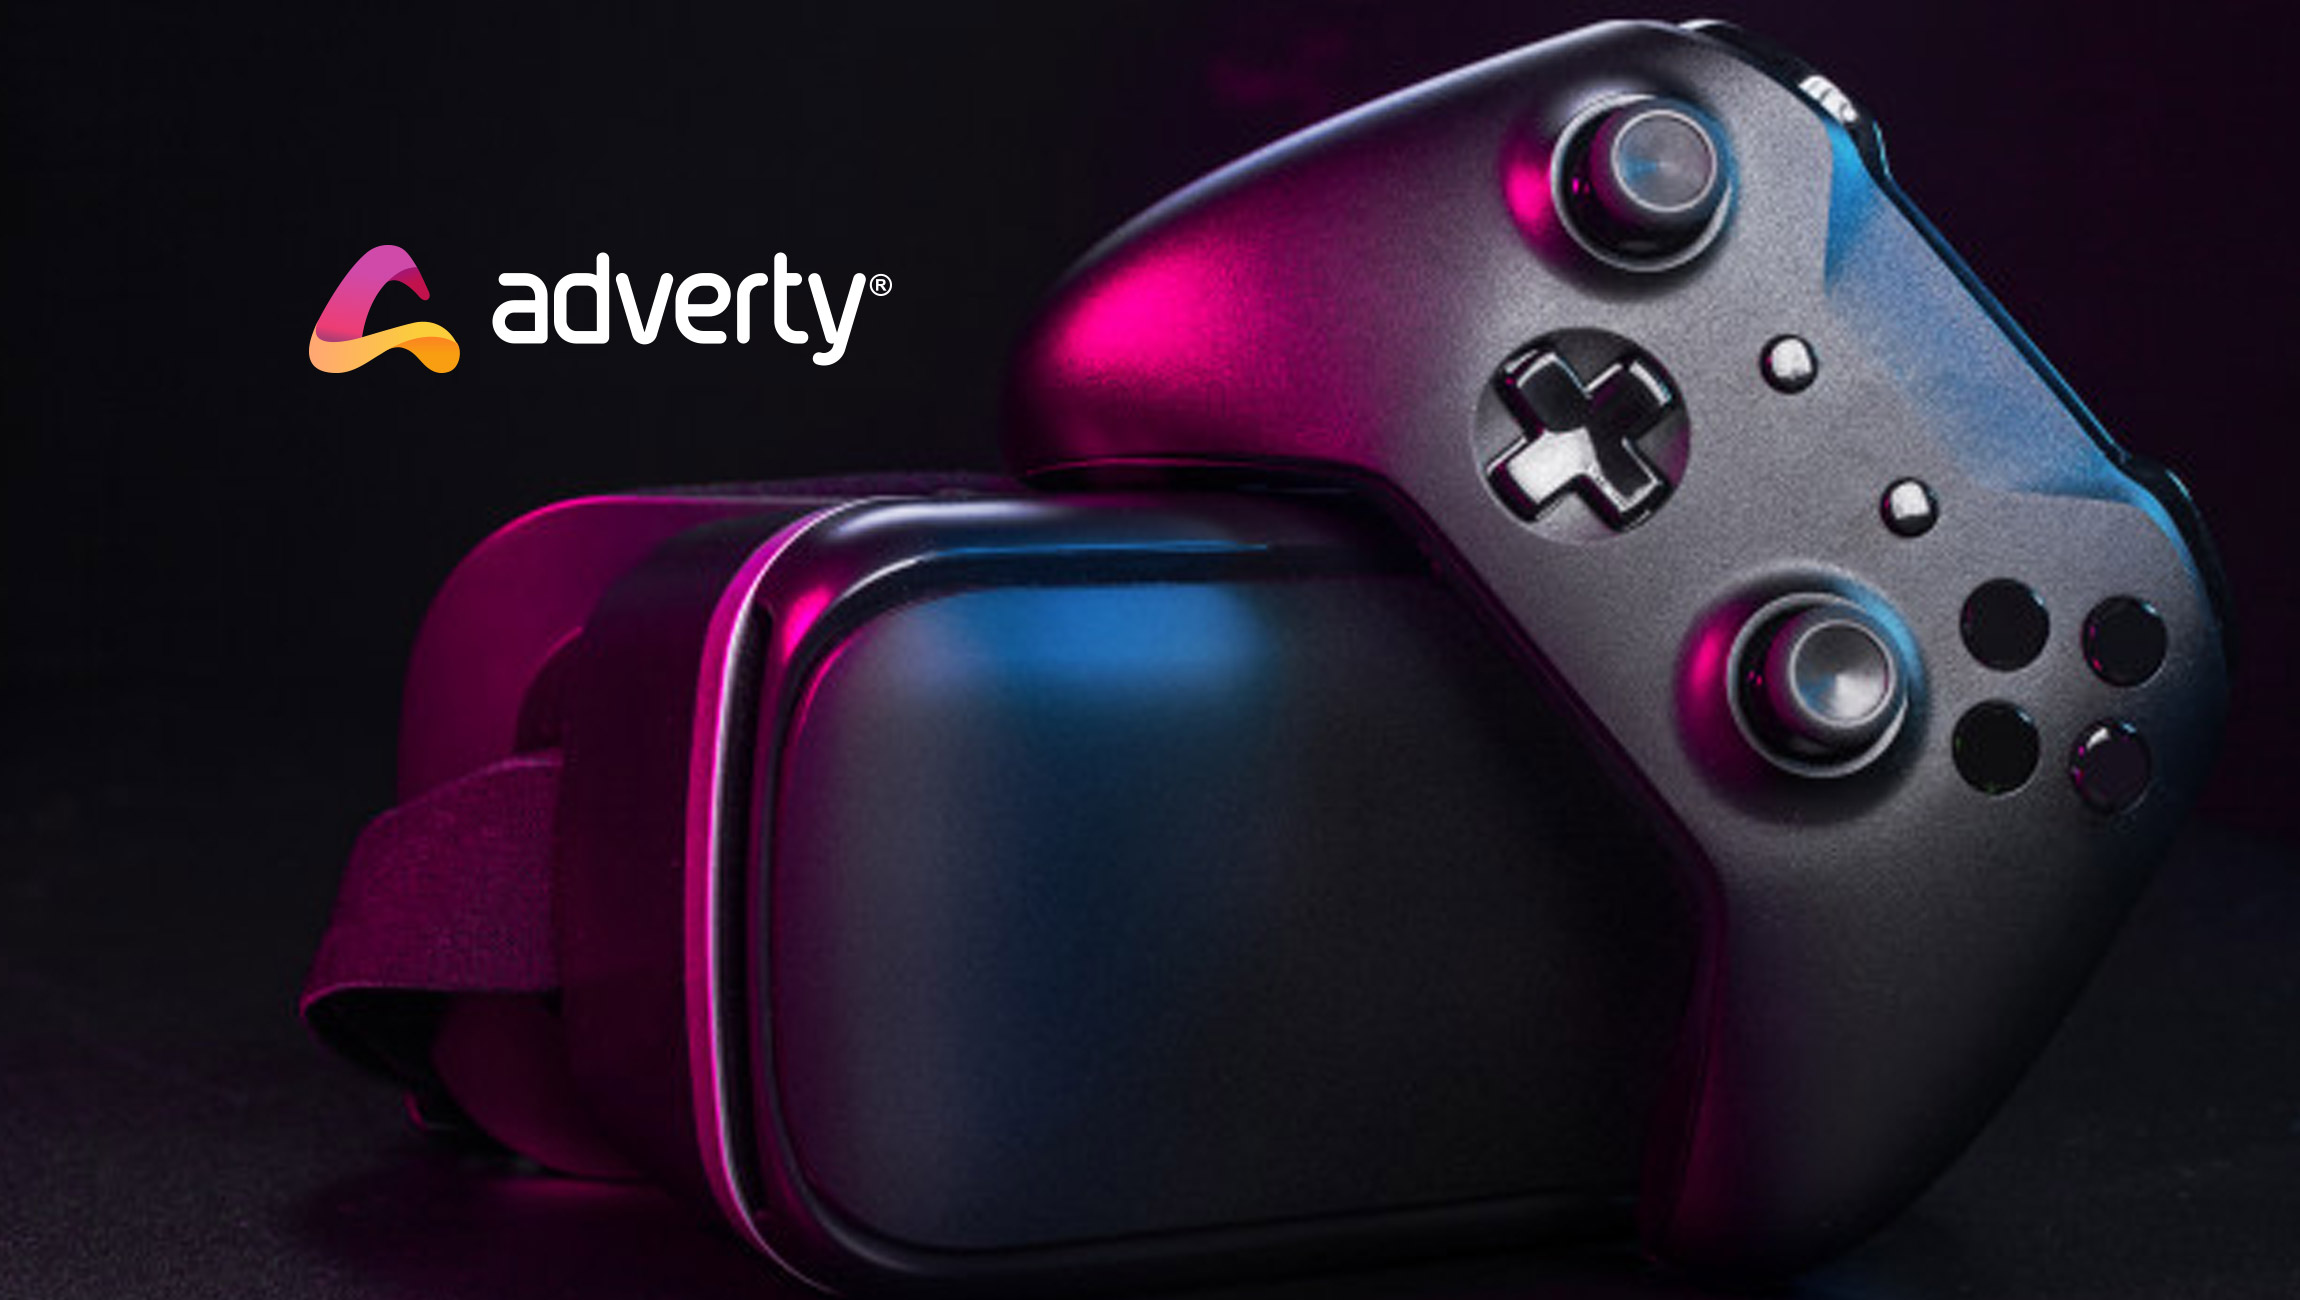 Adverty is granted US patent for in-game ad viewability technology BrainImpression™